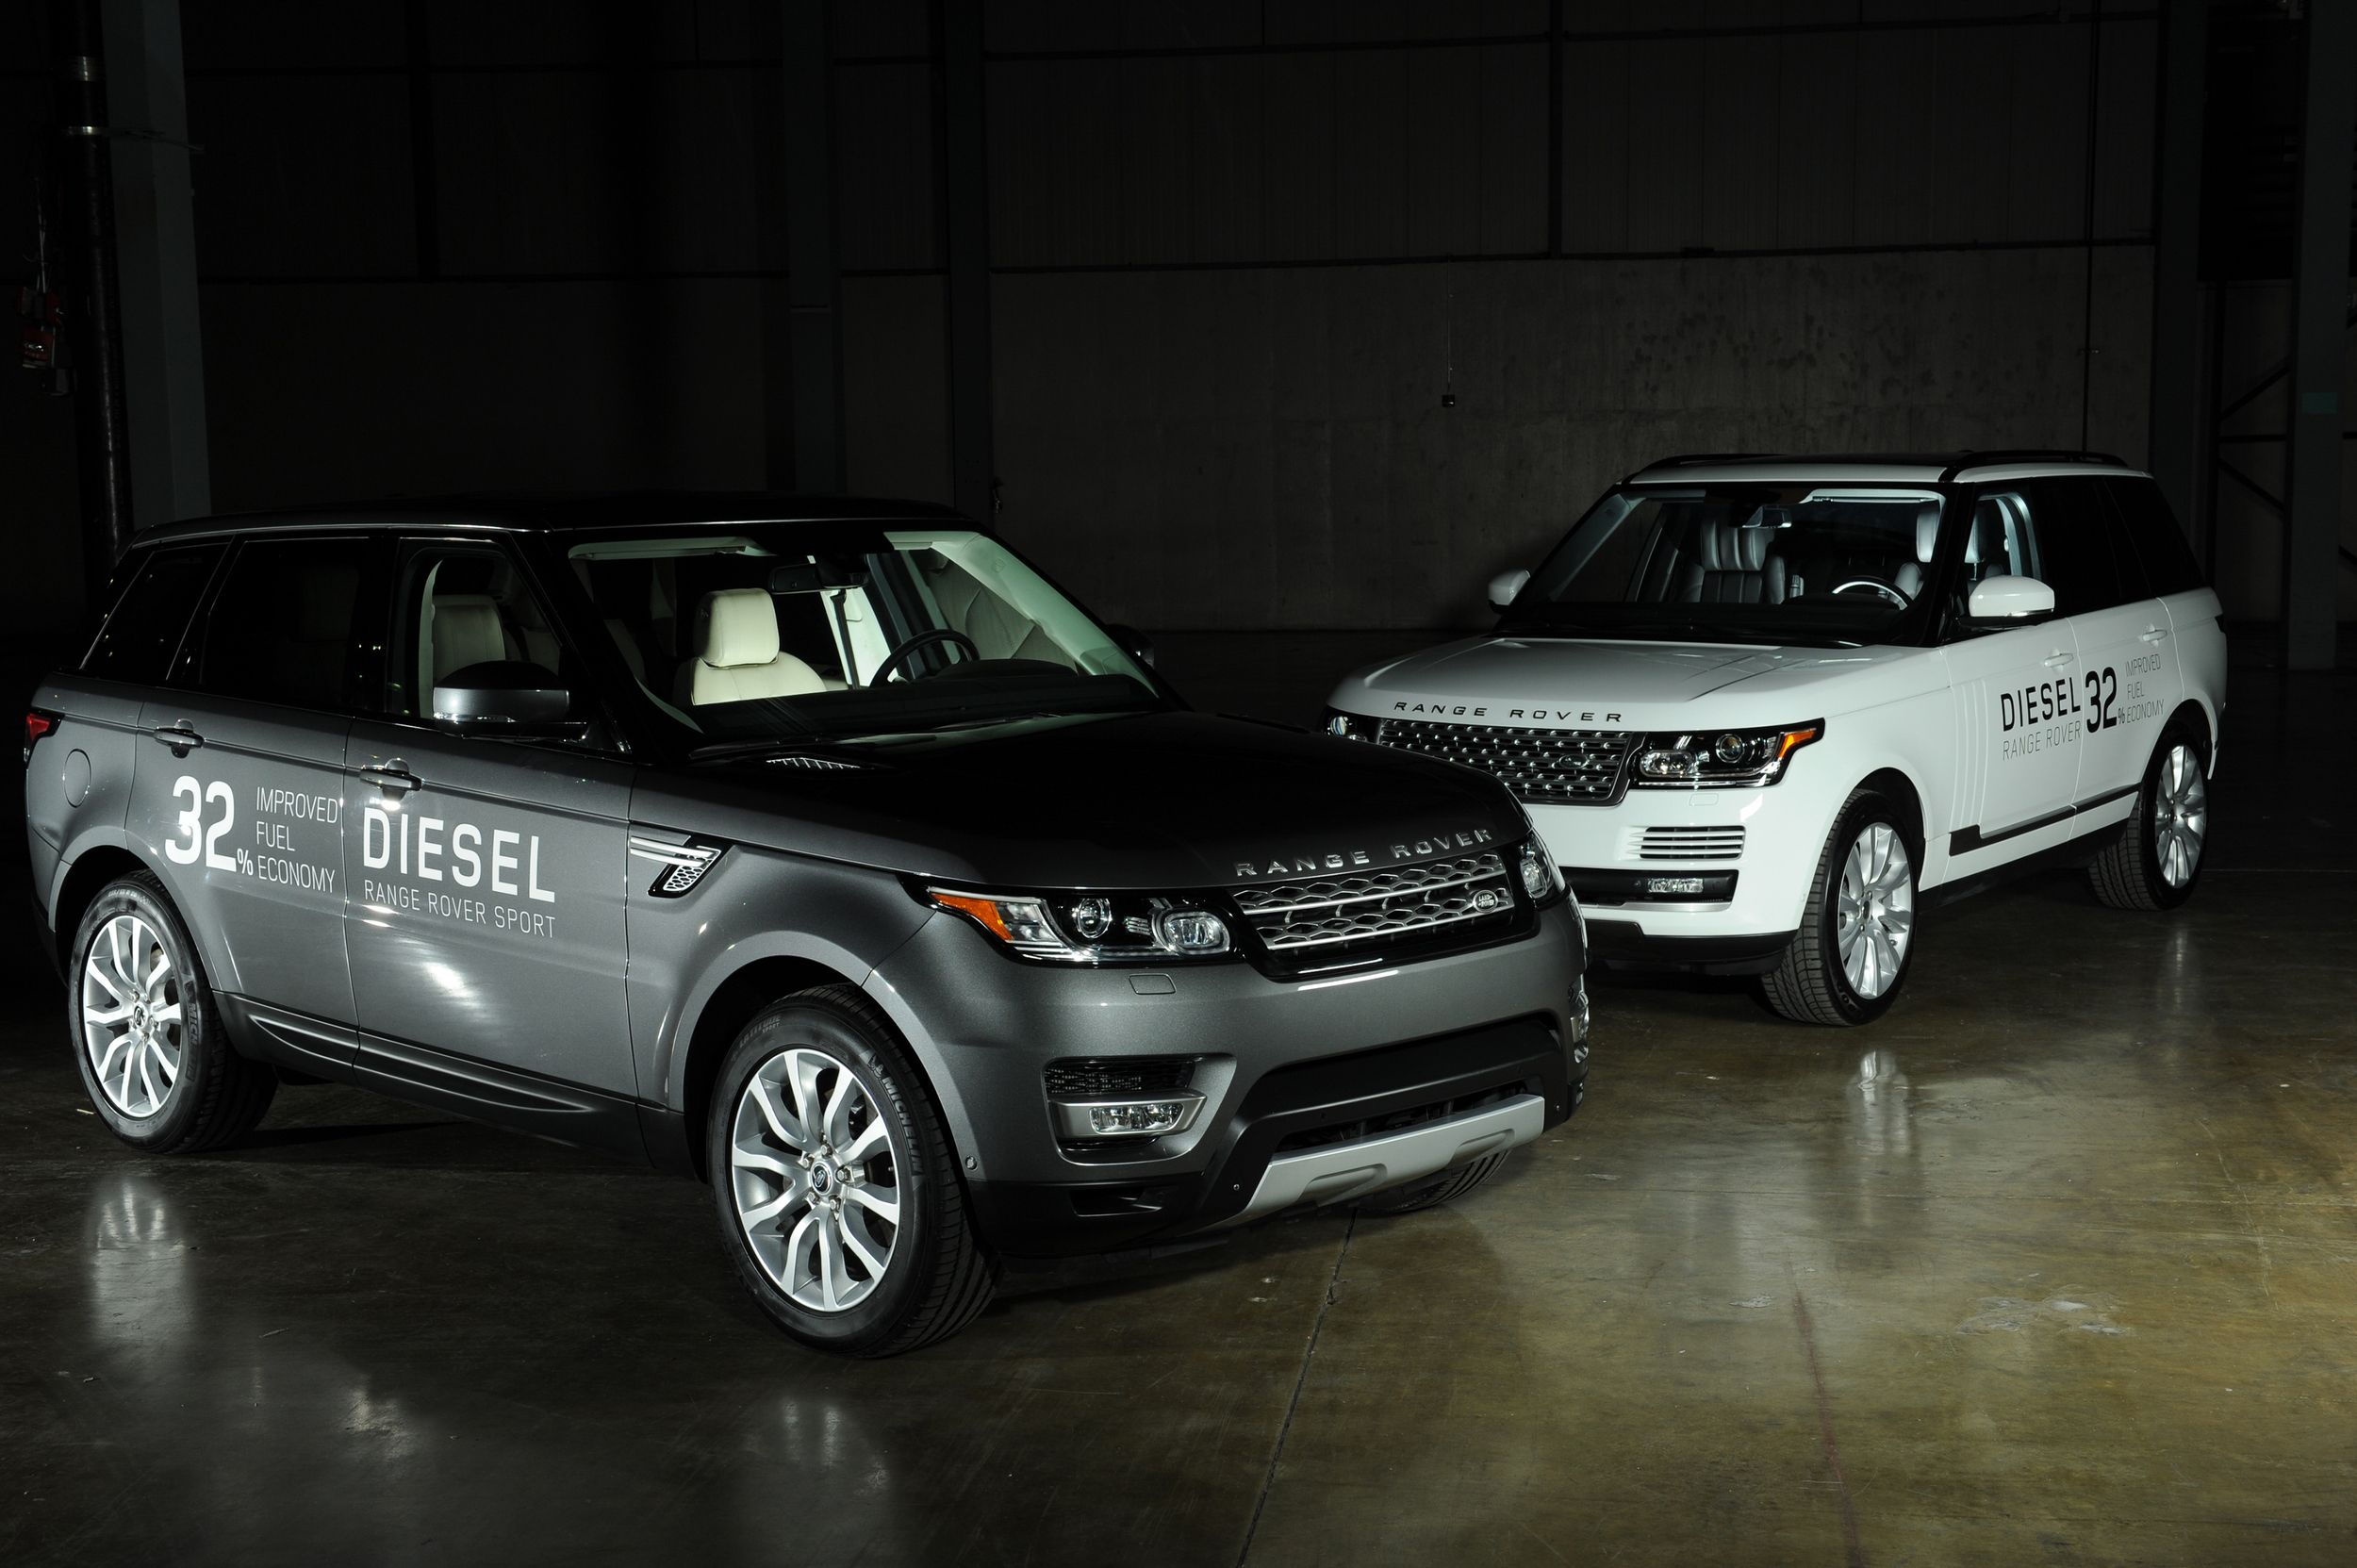 All jaguars and land rovers to get diesel engines